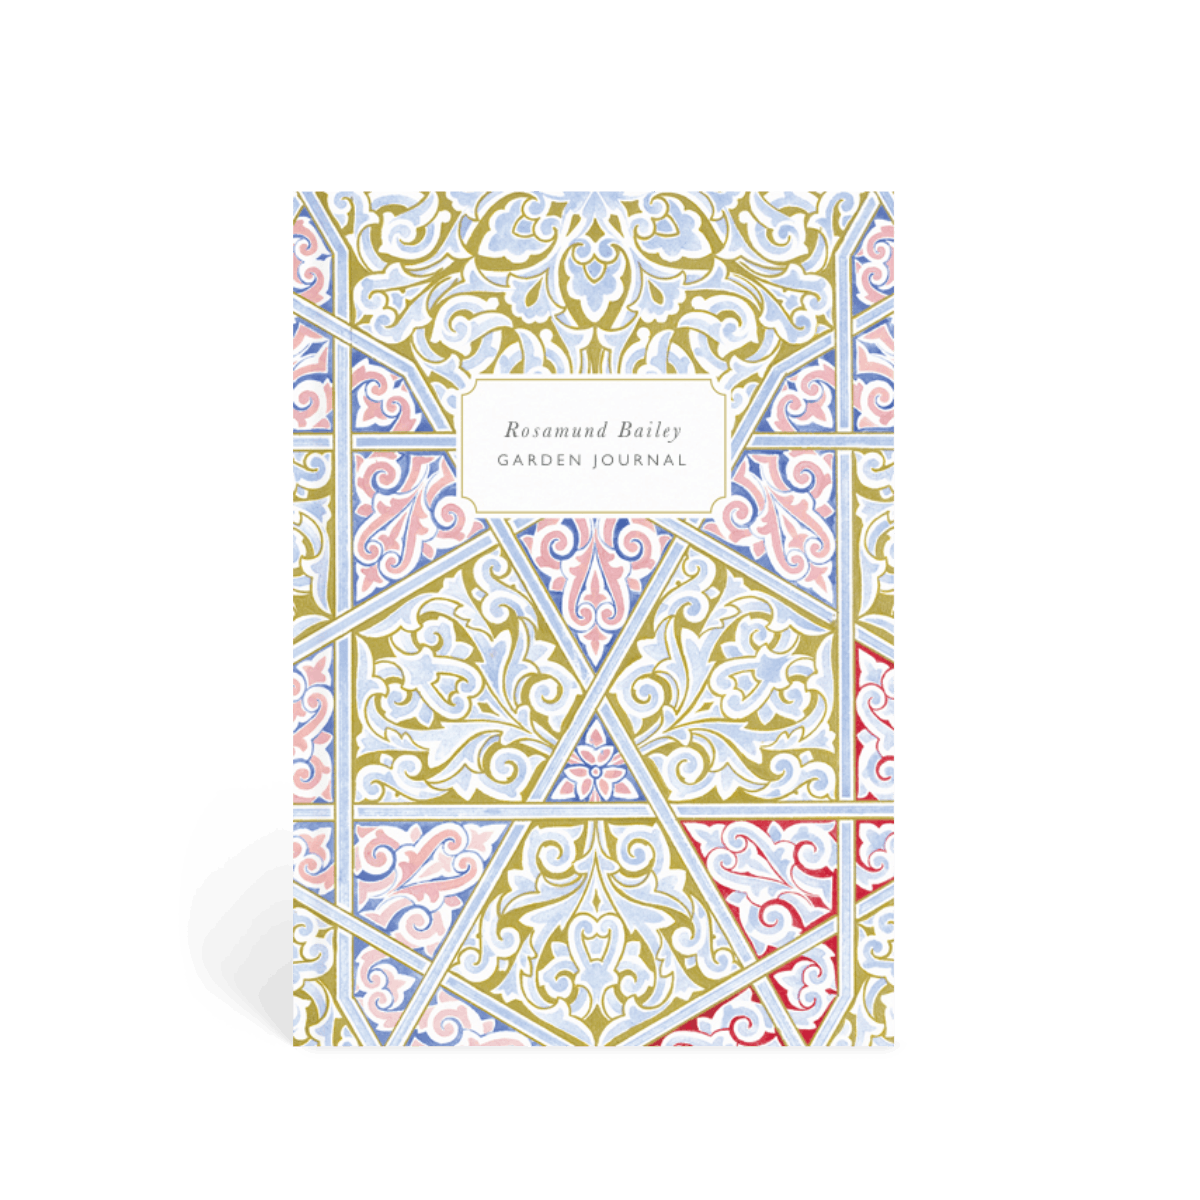 Https%3a%2f%2fwww.papier.com%2fproduct image%2f55269%2f25%2fpastel filigree 13276 front 1570454563.png?ixlib=rb 1.1